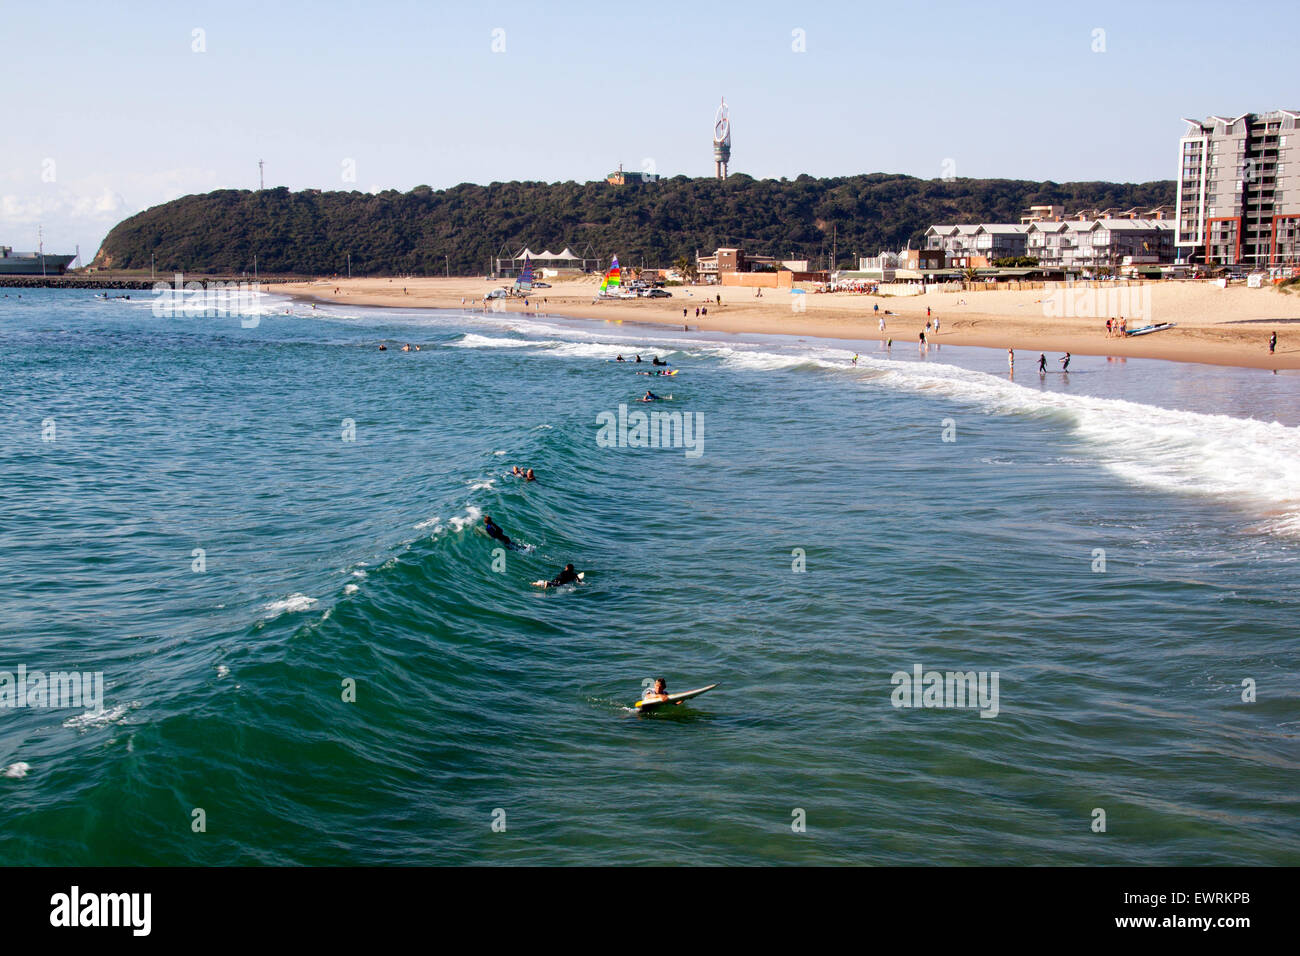 DURBAN, SOUTH AFRICA - JUNE 7, 2015: Many unknown people and surfers on Vetch's beach in Durban, South Africa - Stock Image